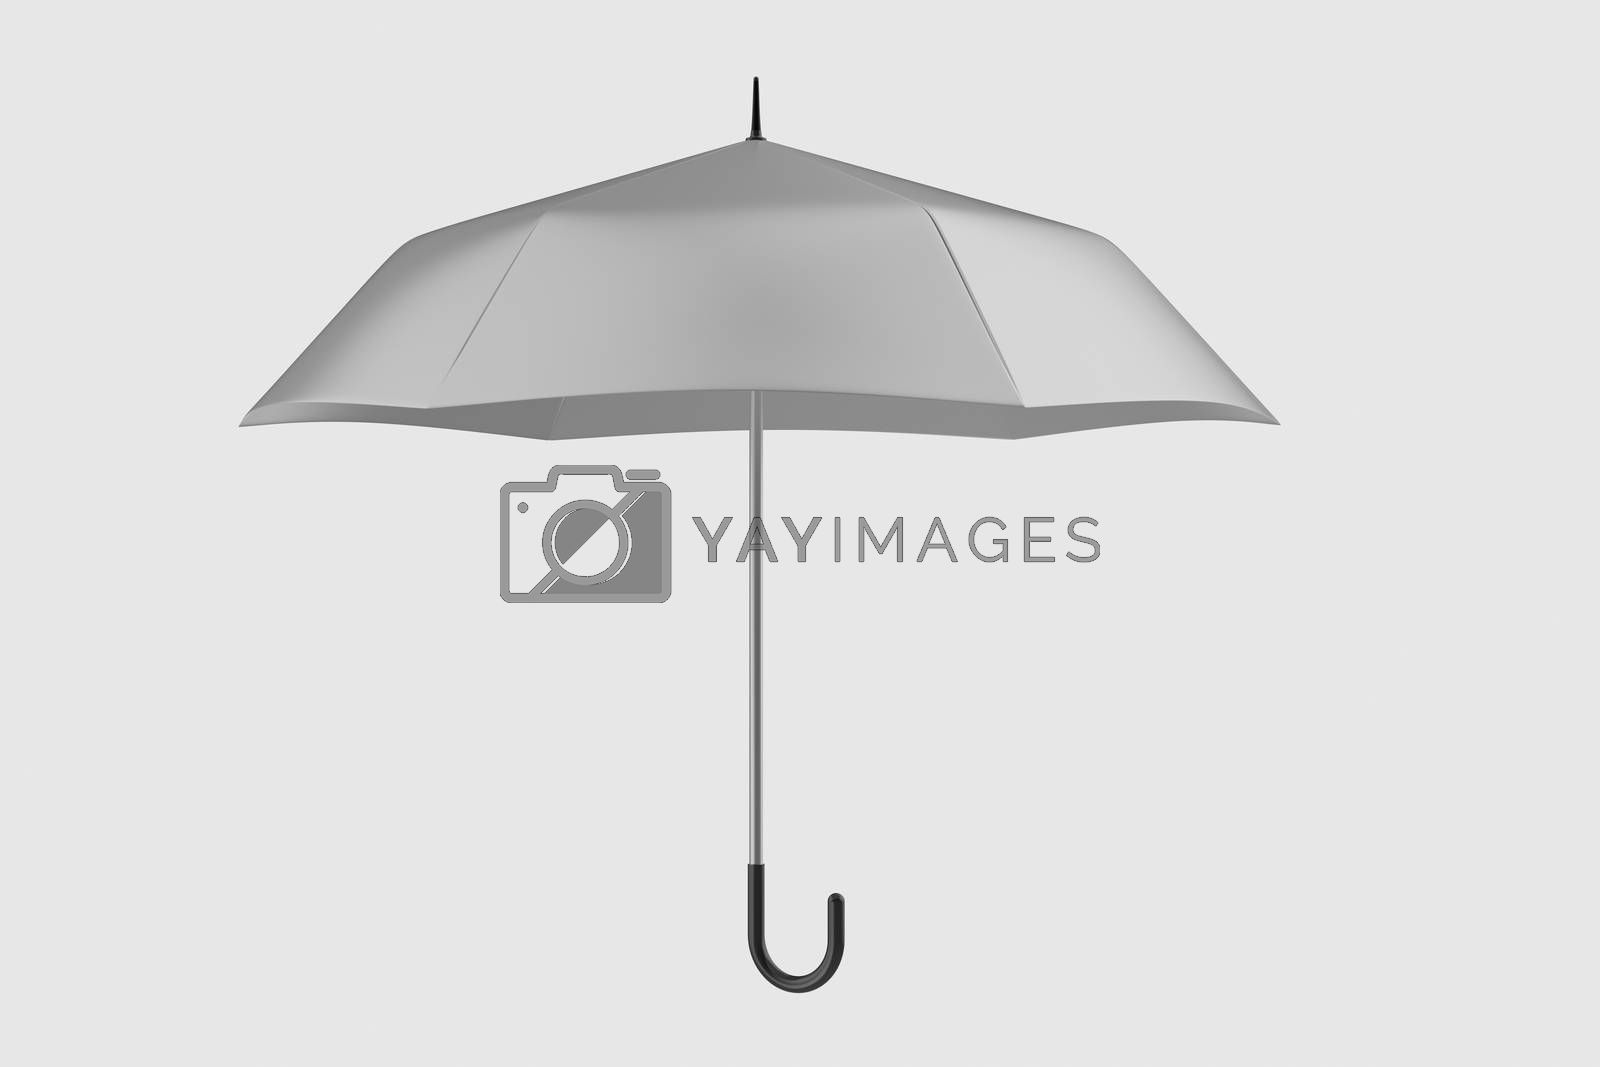 3d rendering, the umbrella with white background by vinkfan